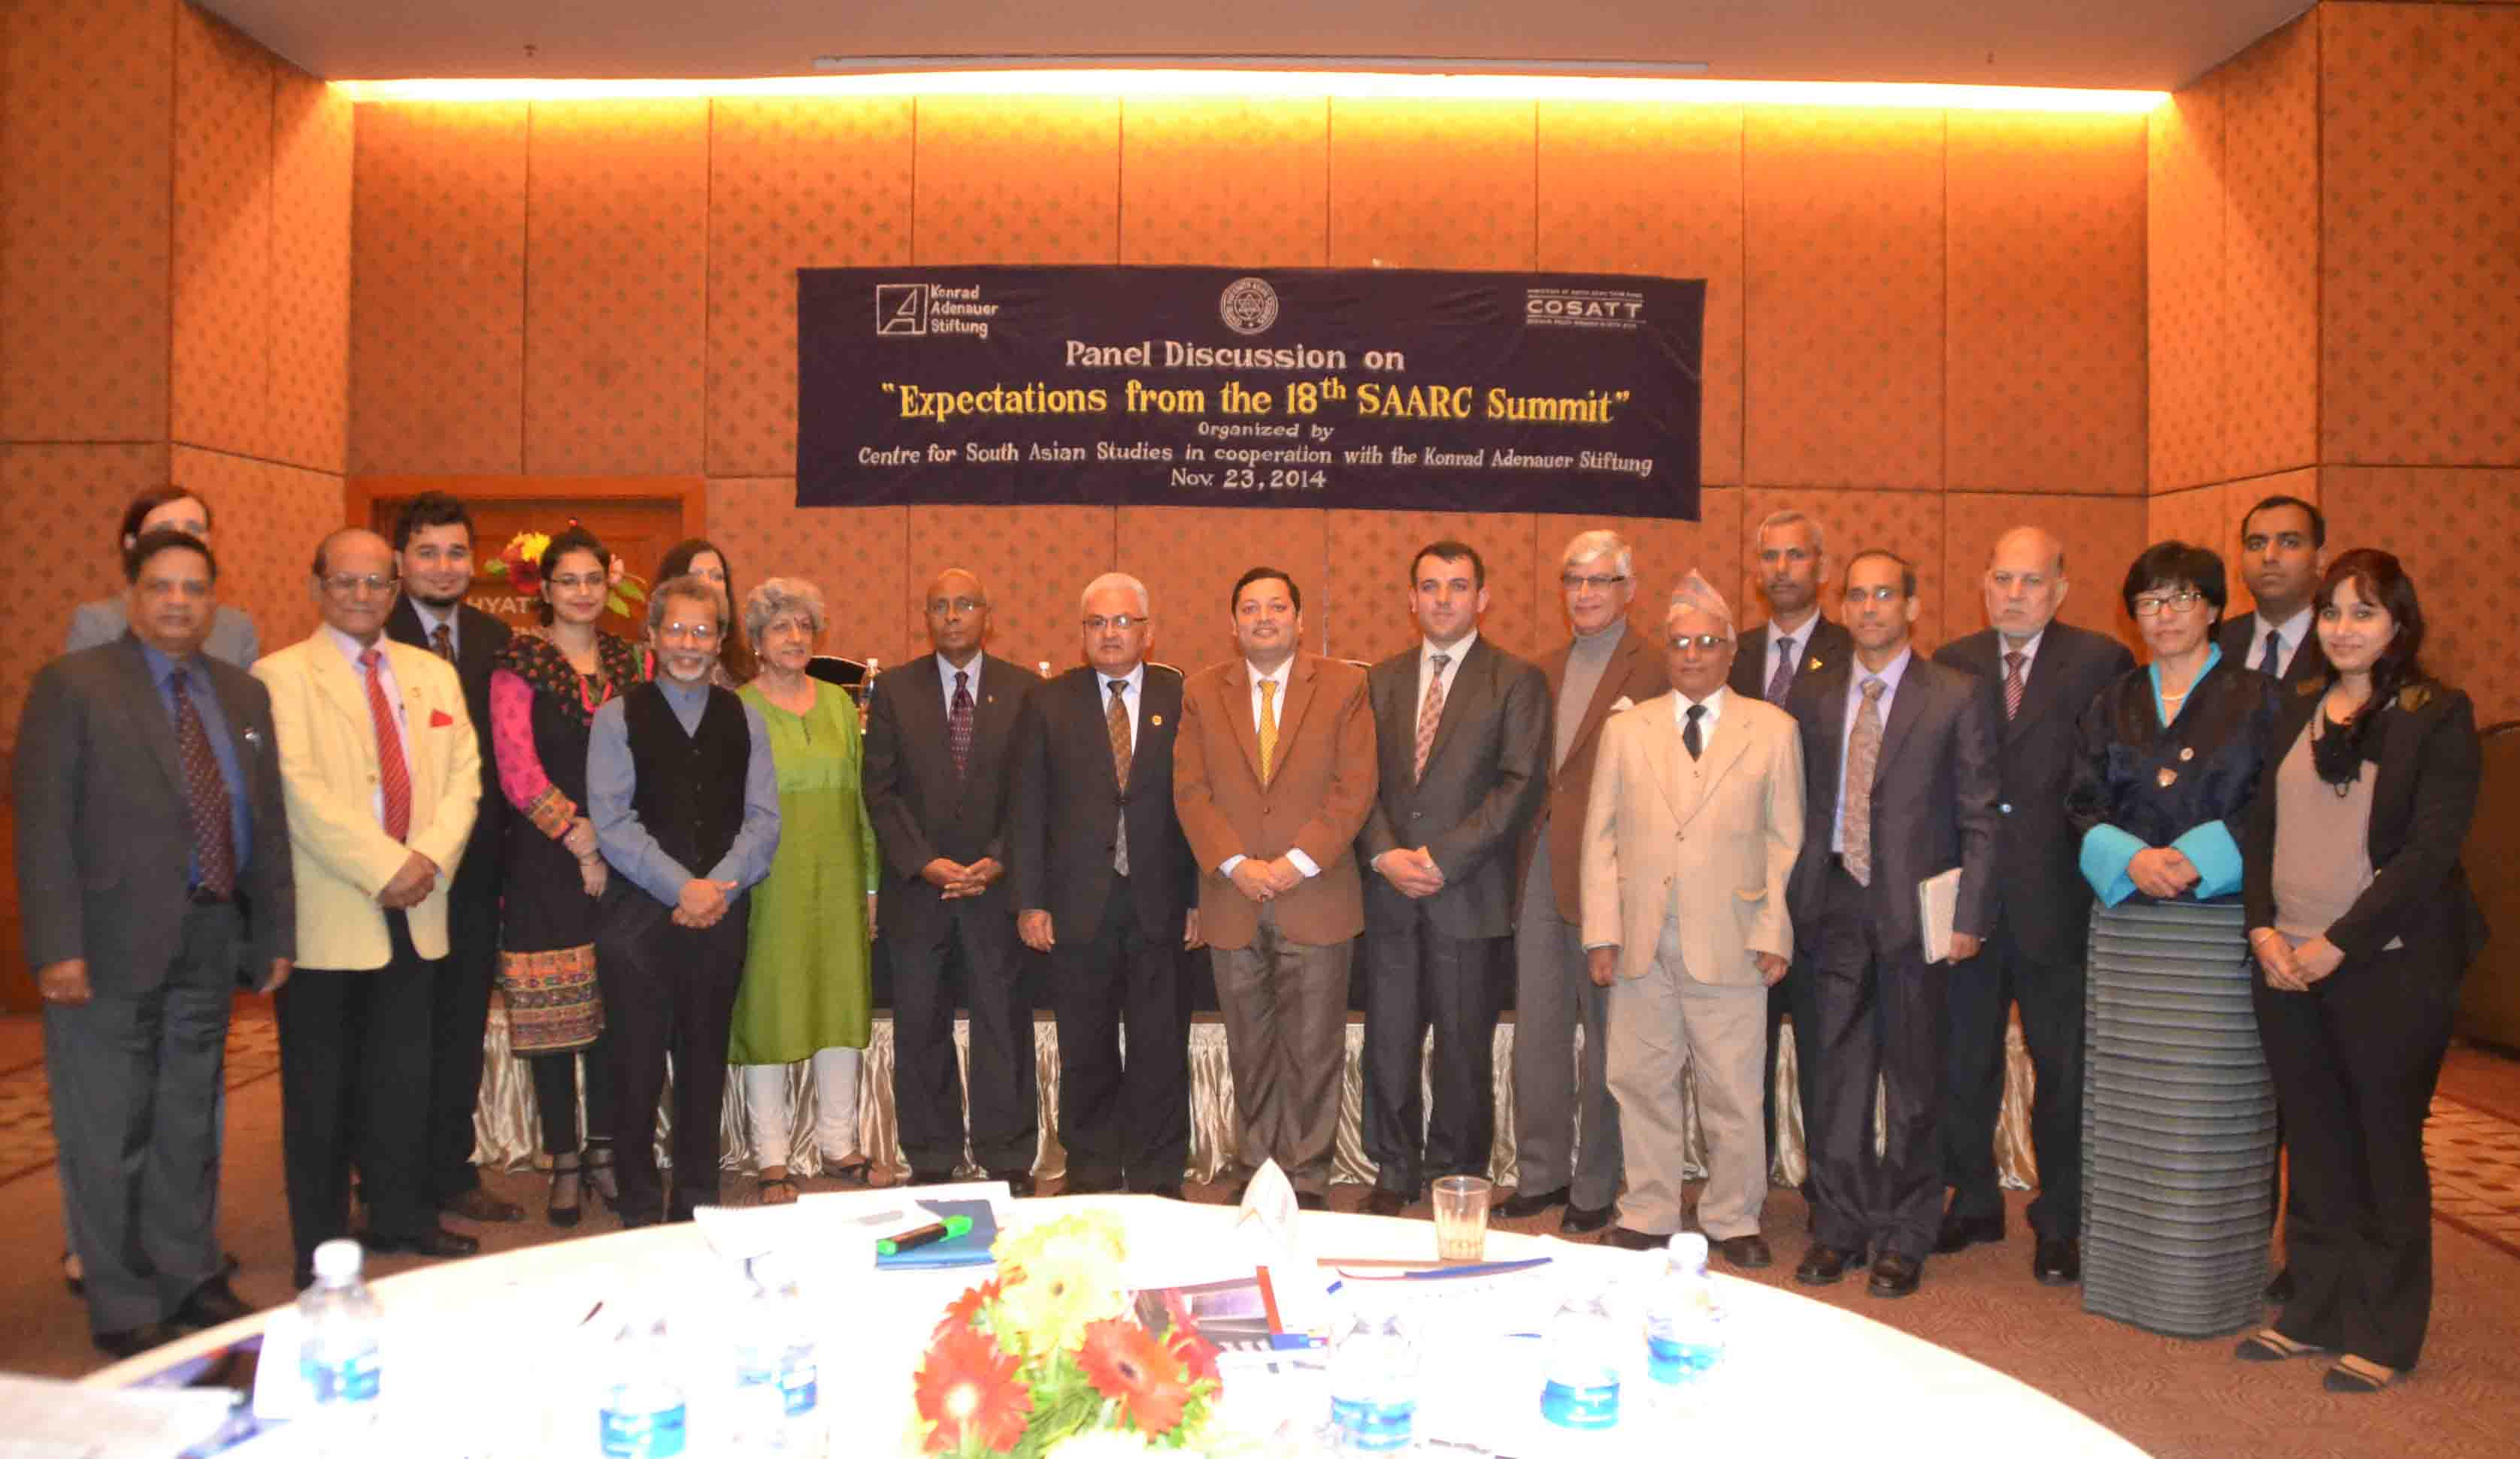 CSAS-COSATT Panel Discussion on Expectations from the 18th SAARC Summit